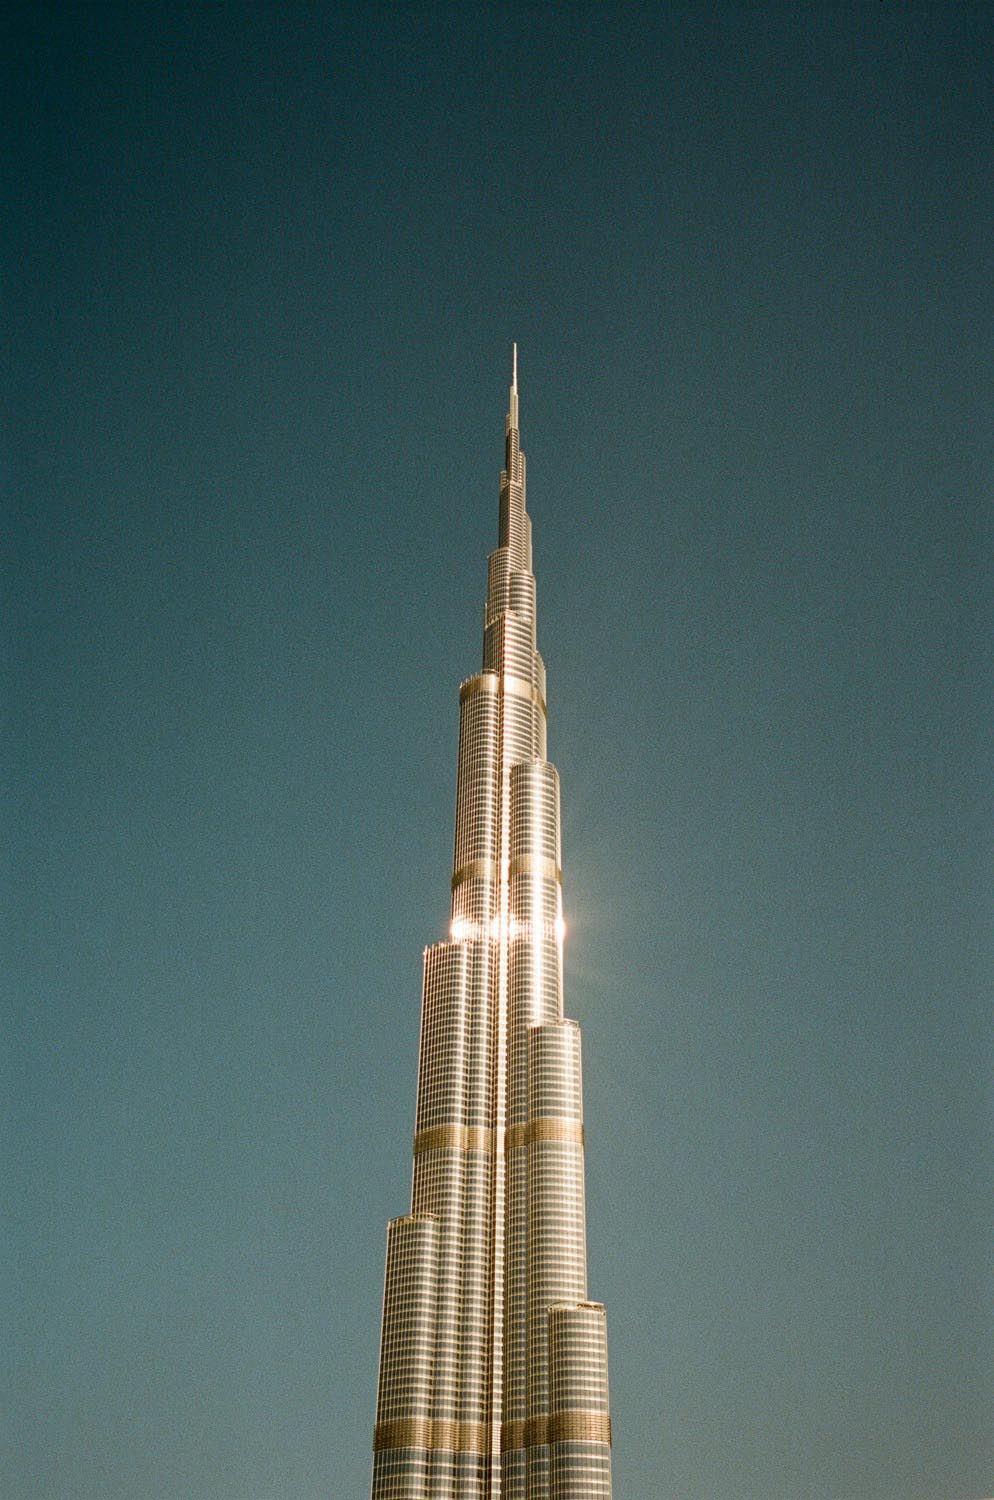 architecture building skyscraper buildings skyscrapers Dubai emirates